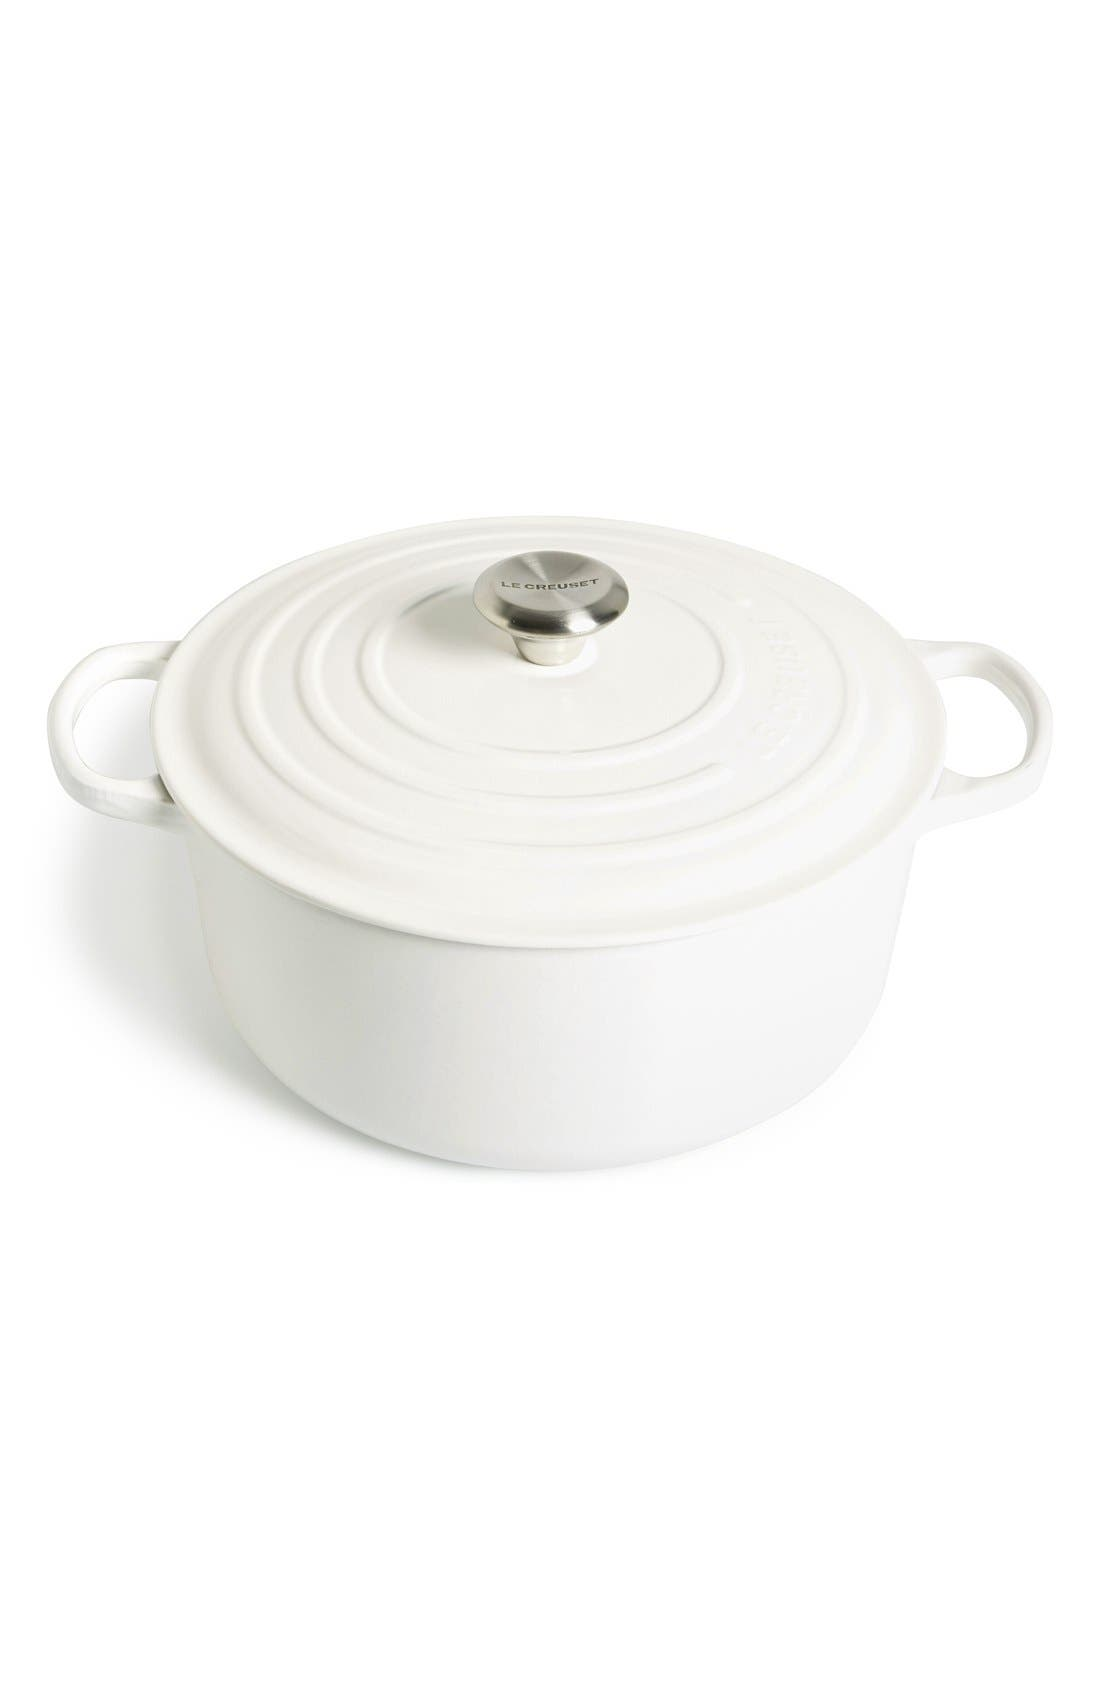 Main Image - Le Creuset Signature 7 1/4 Quart Round Enamel Cast Iron French/Dutch Oven